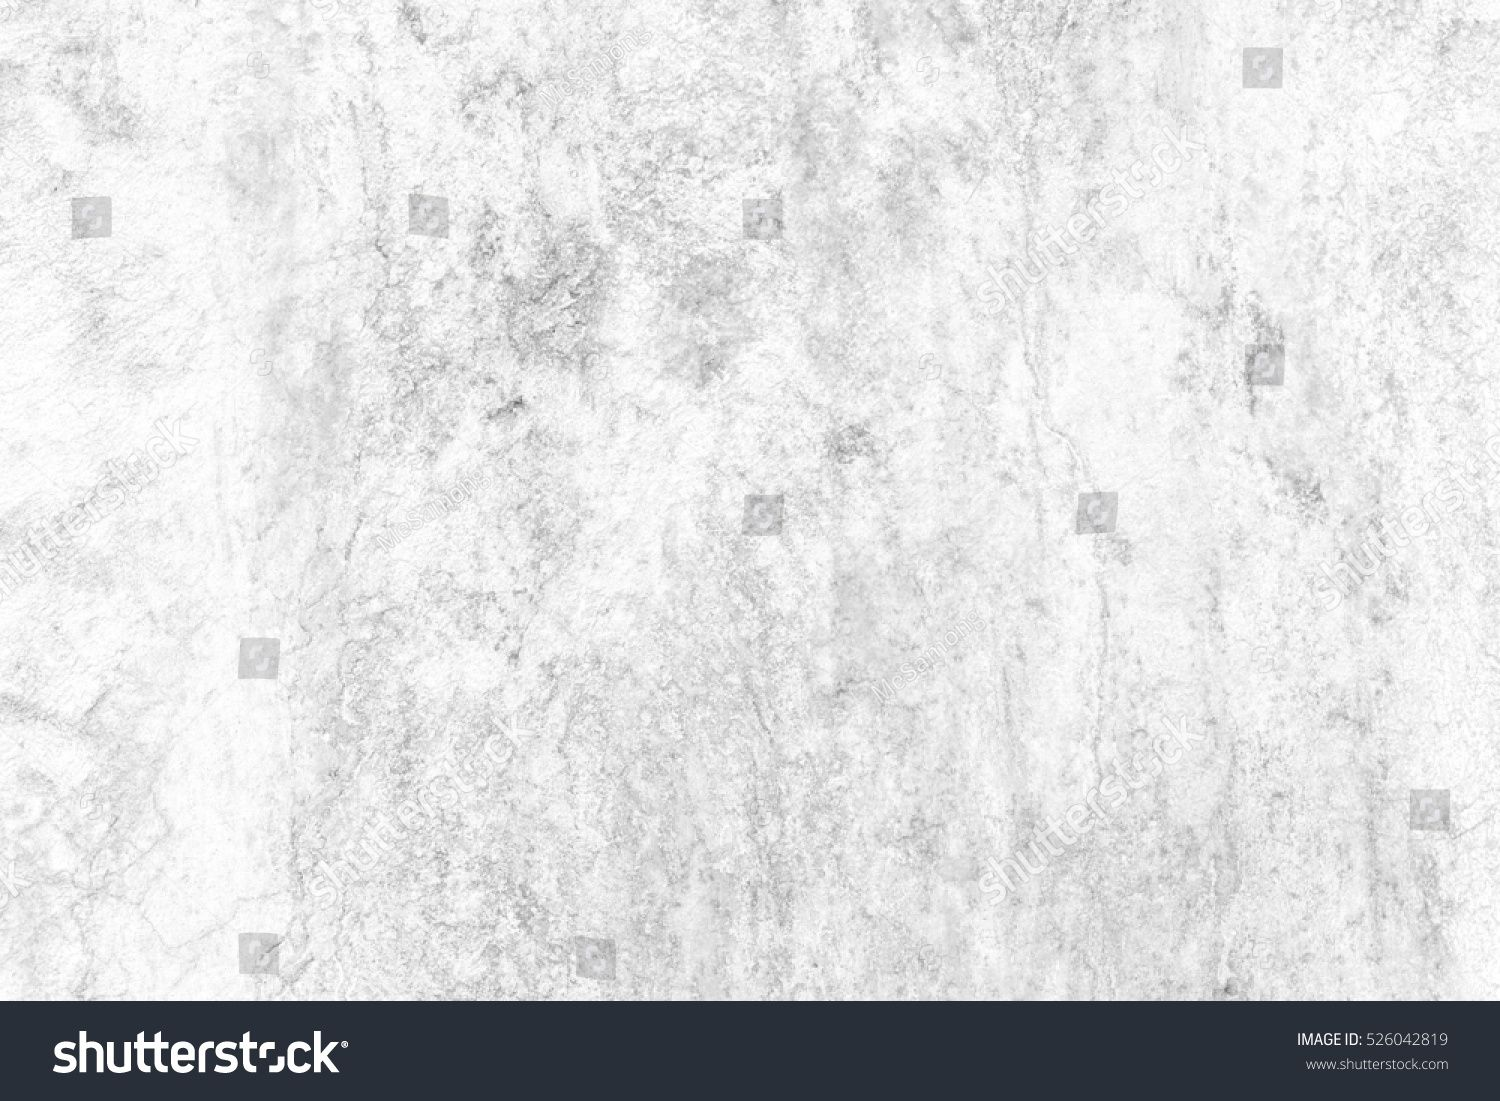 Old White Raw Concrete Wall Texture Background Suitable For Presentation And Web Templates With Space F Concrete Wall Texture Textured Background Concrete Wall